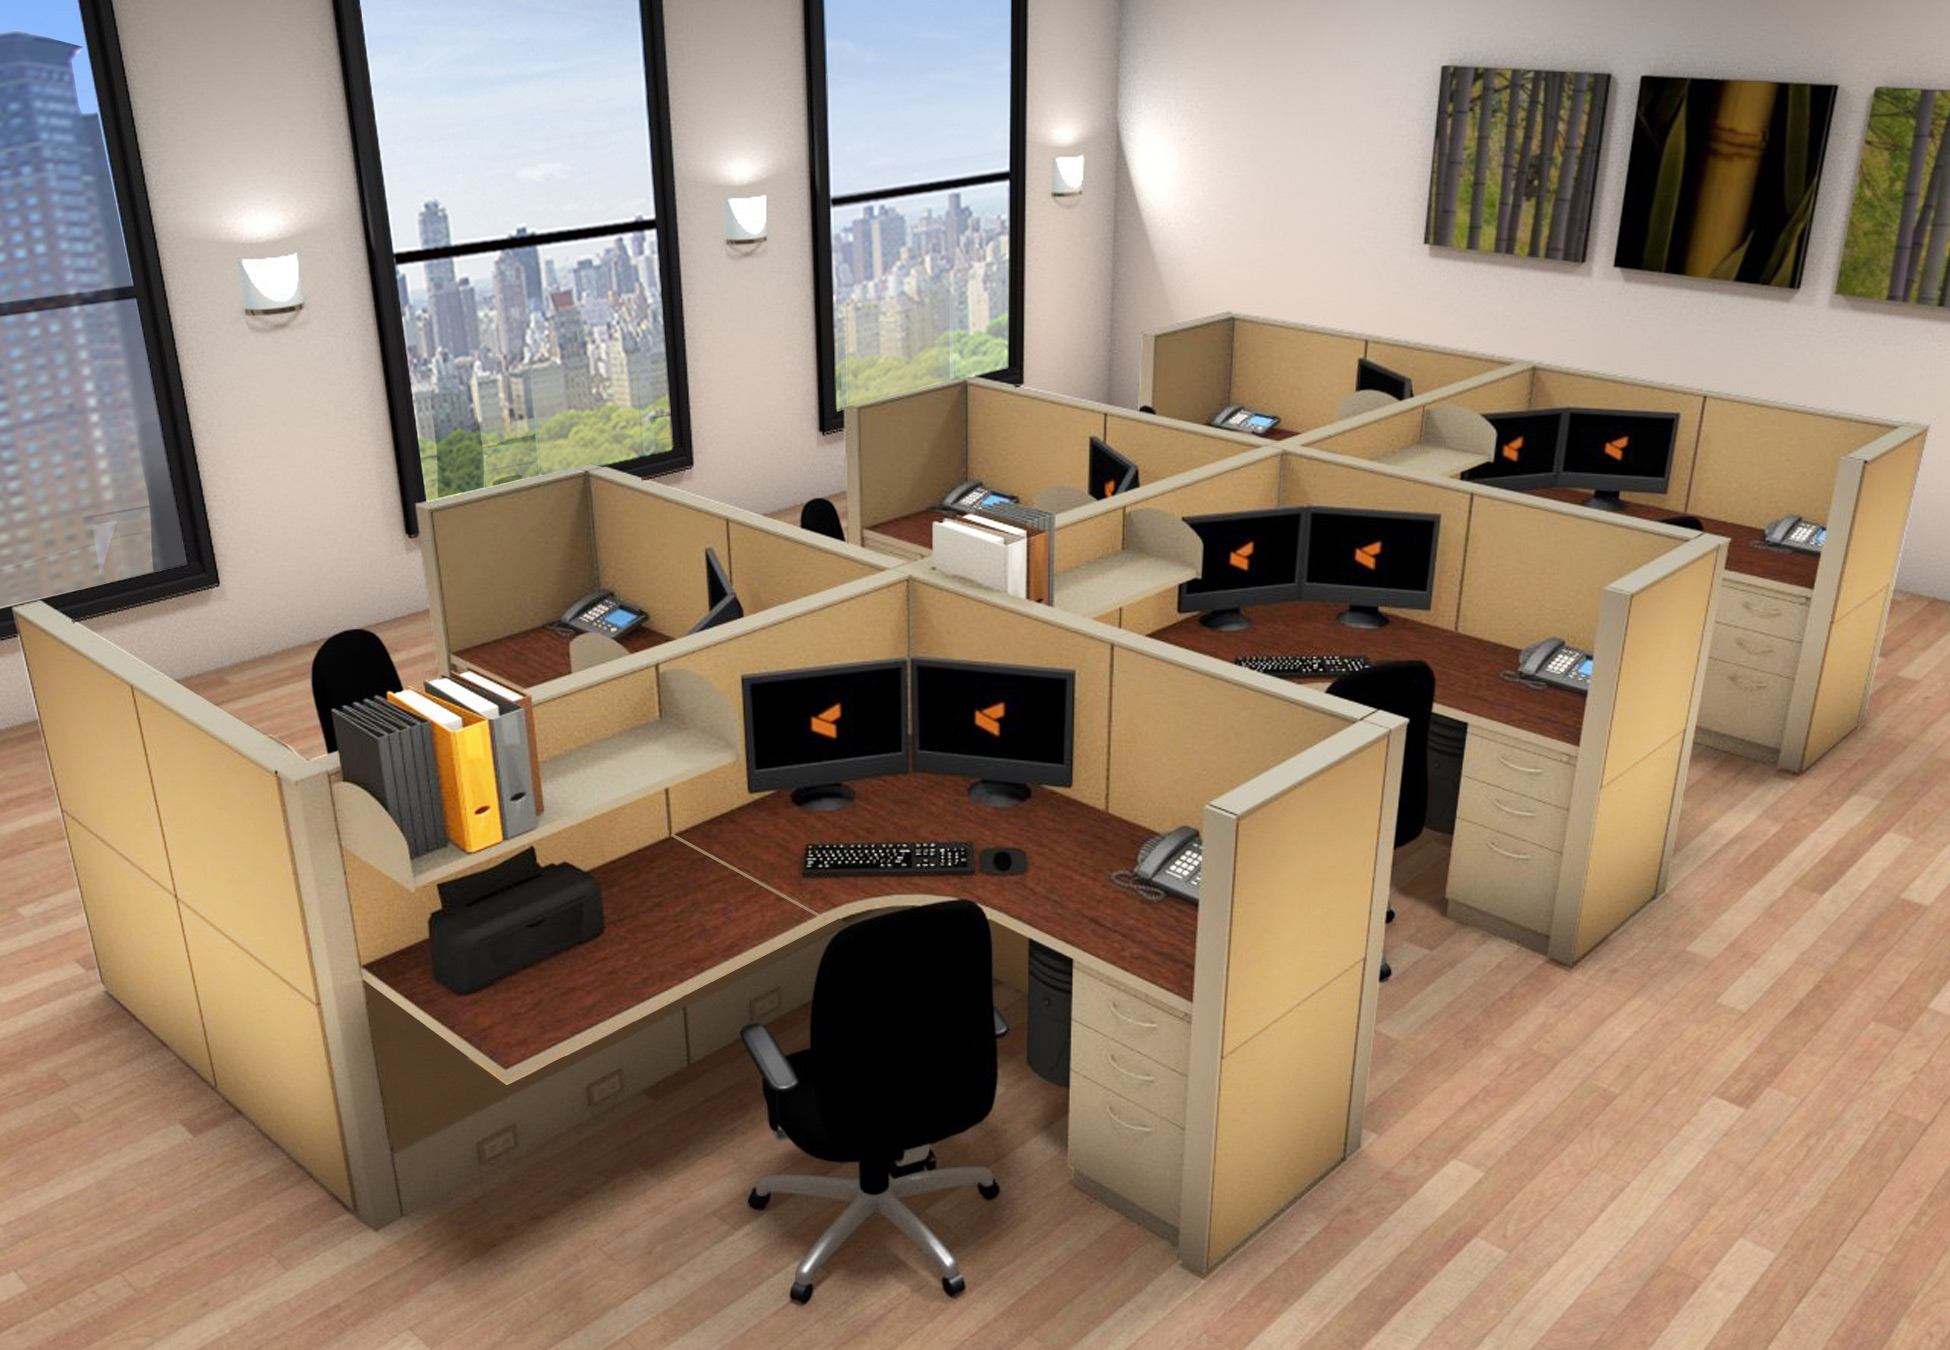 Office Work Stations 5x6 Cubicle Workstations Cubicle  : 5x6 cubicle workstations matrix modular 5x6x50 6 pack cluster from www.cubicles.com size 1950 x 1350 jpeg 532kB